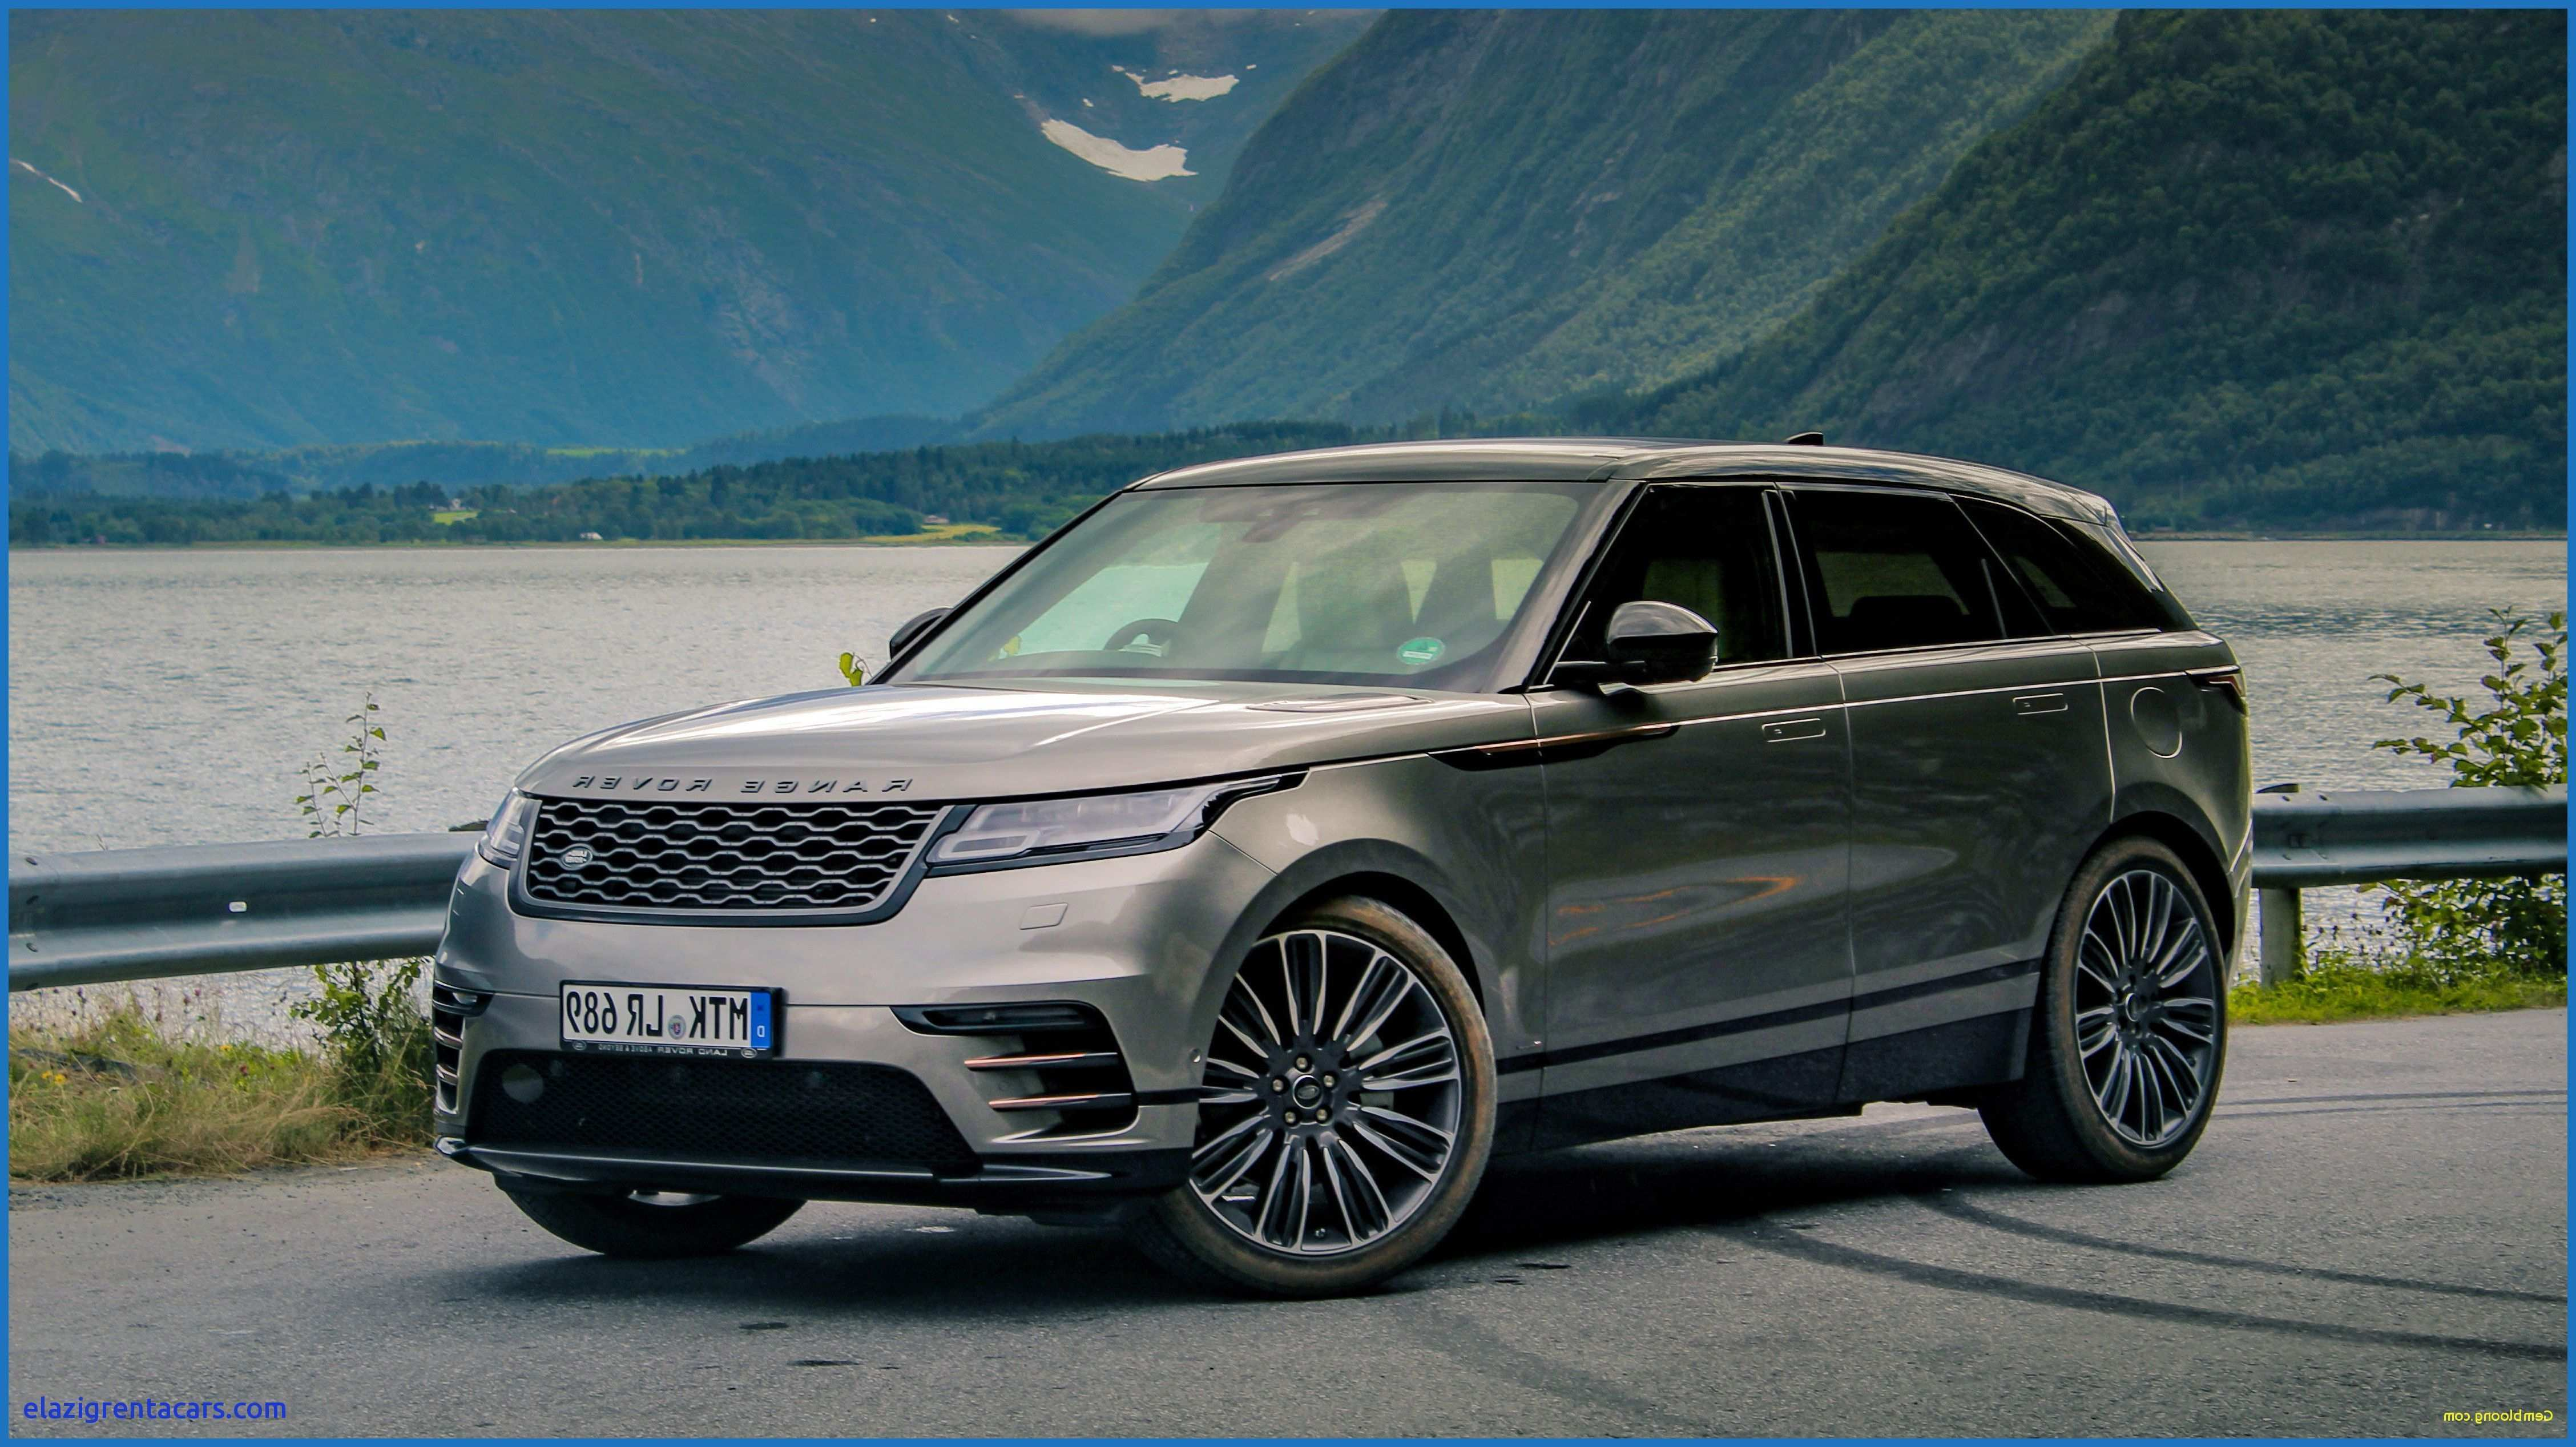 50 All New 2019 Skoda Octavia India Egypt Release Date And Concept